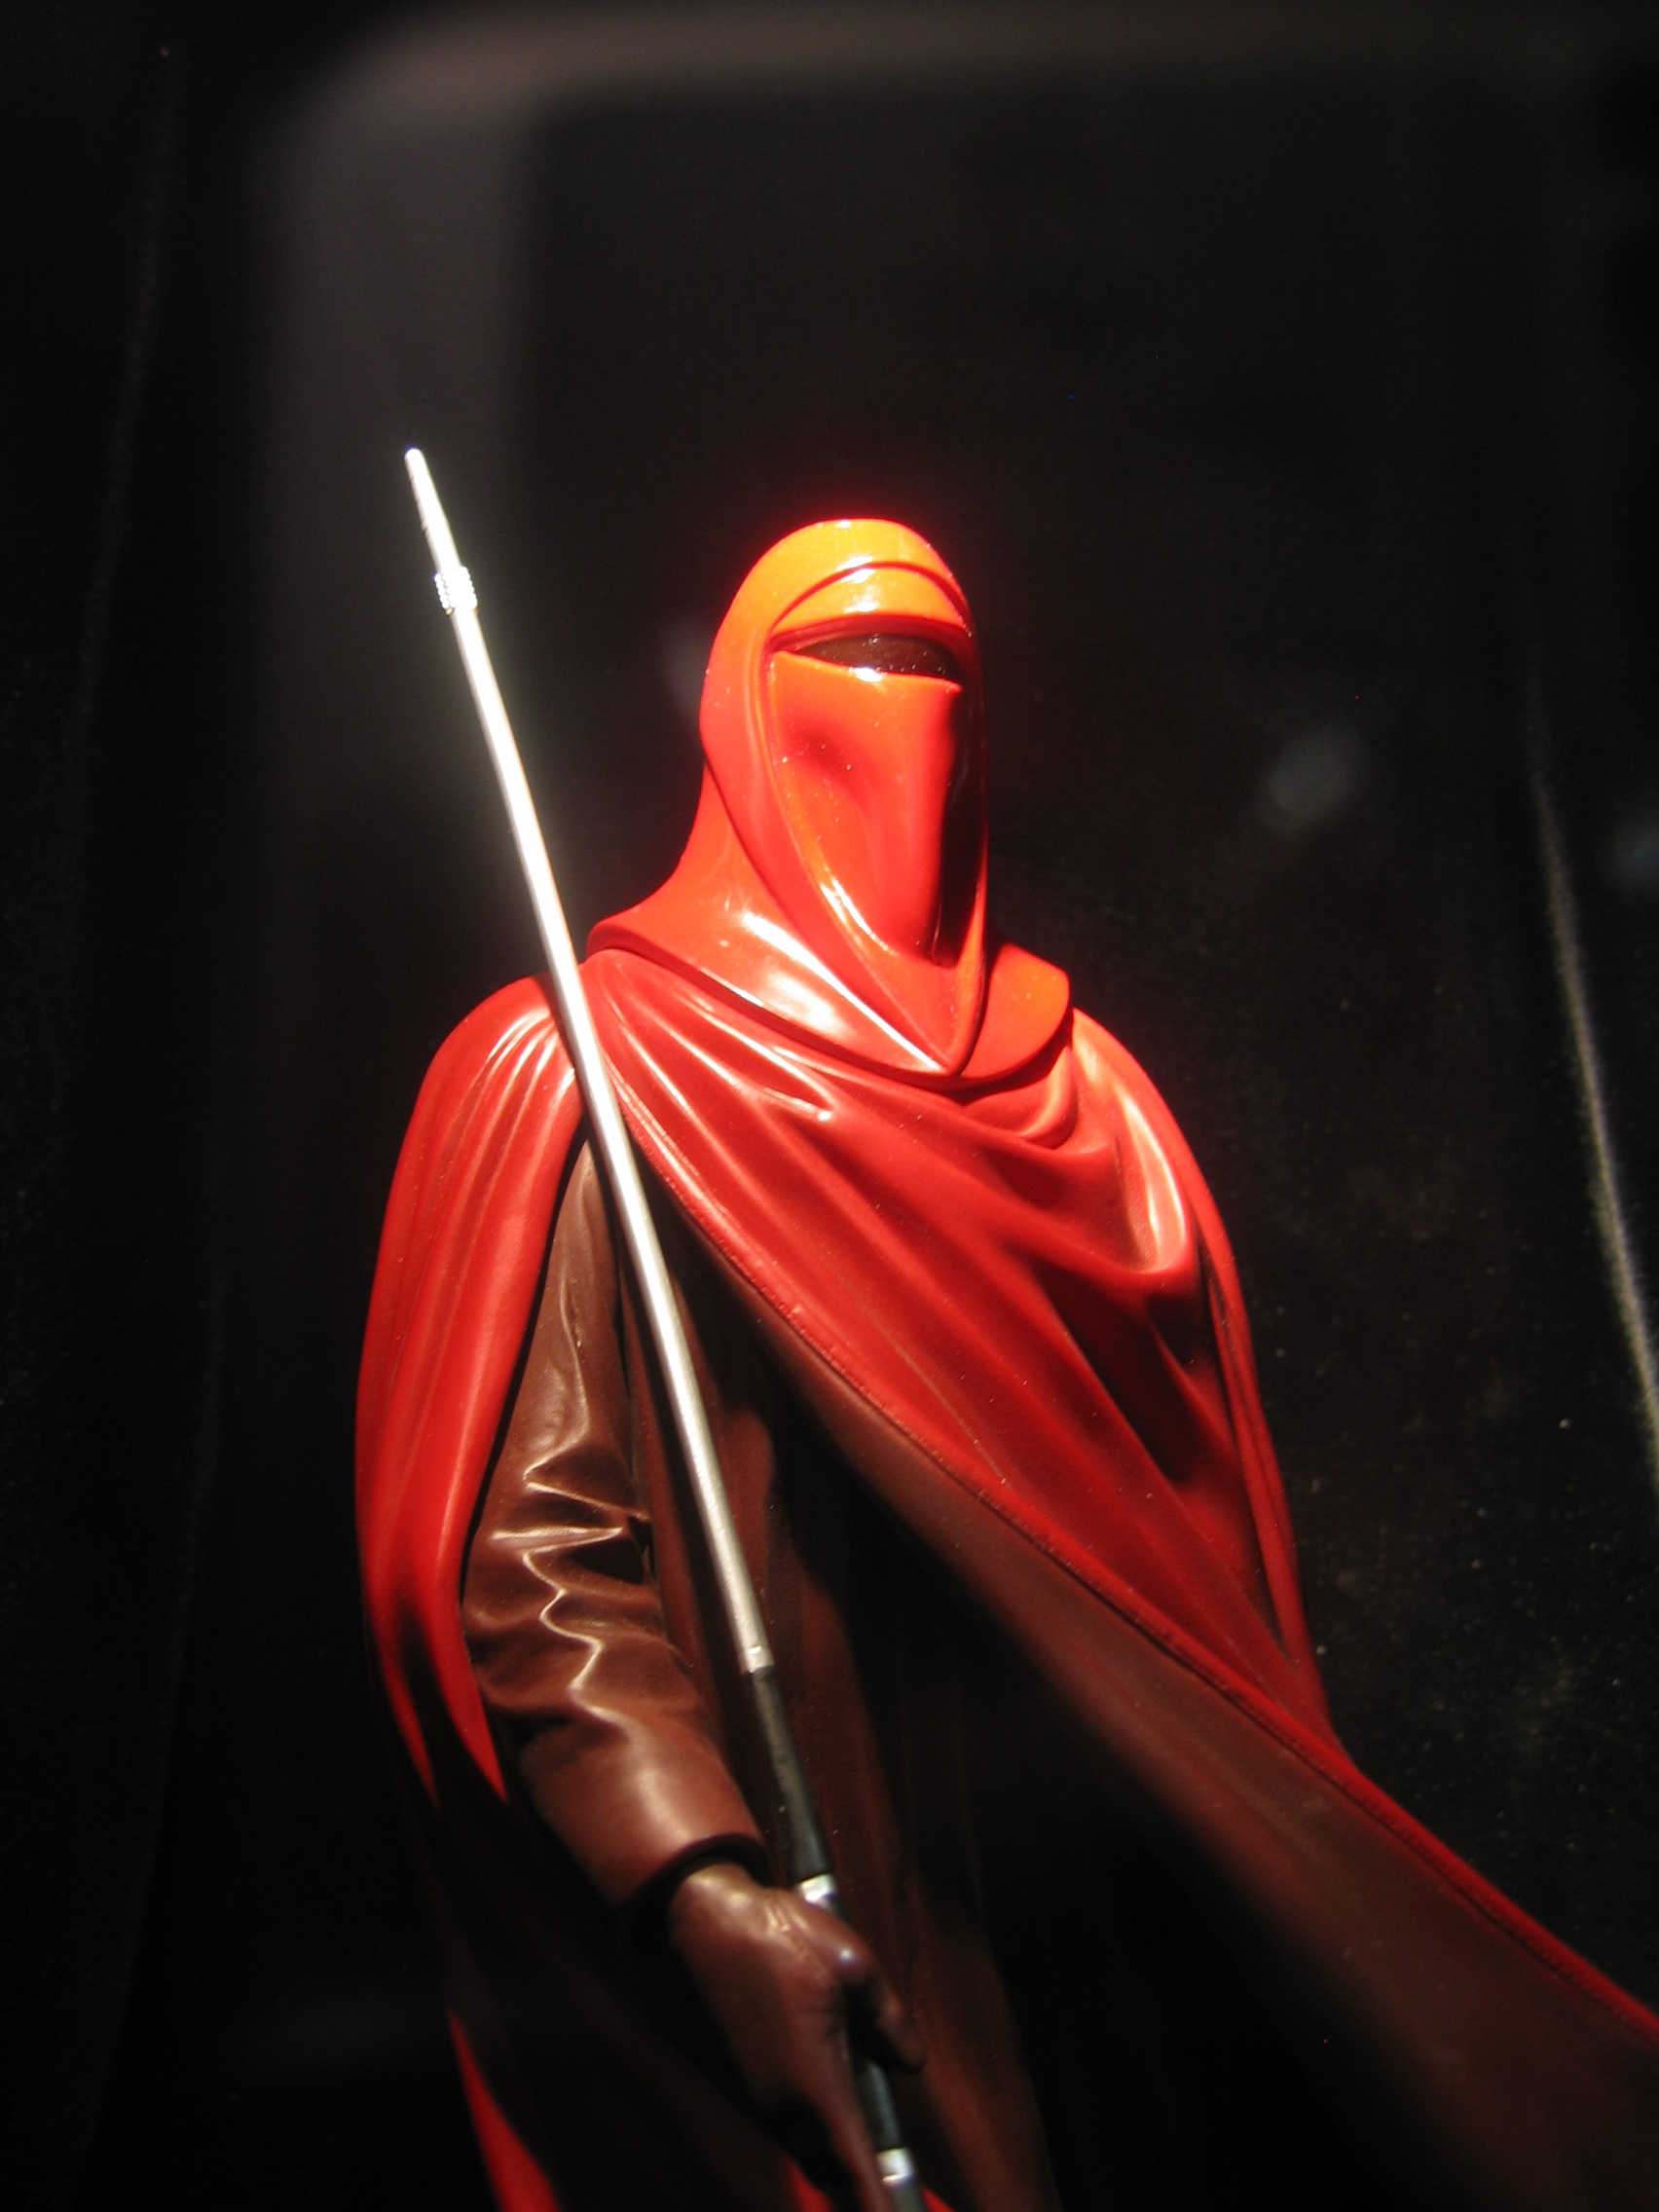 Star Wars Imperial Guard Wallpaper Imperial royal guard statue by 1704x2272